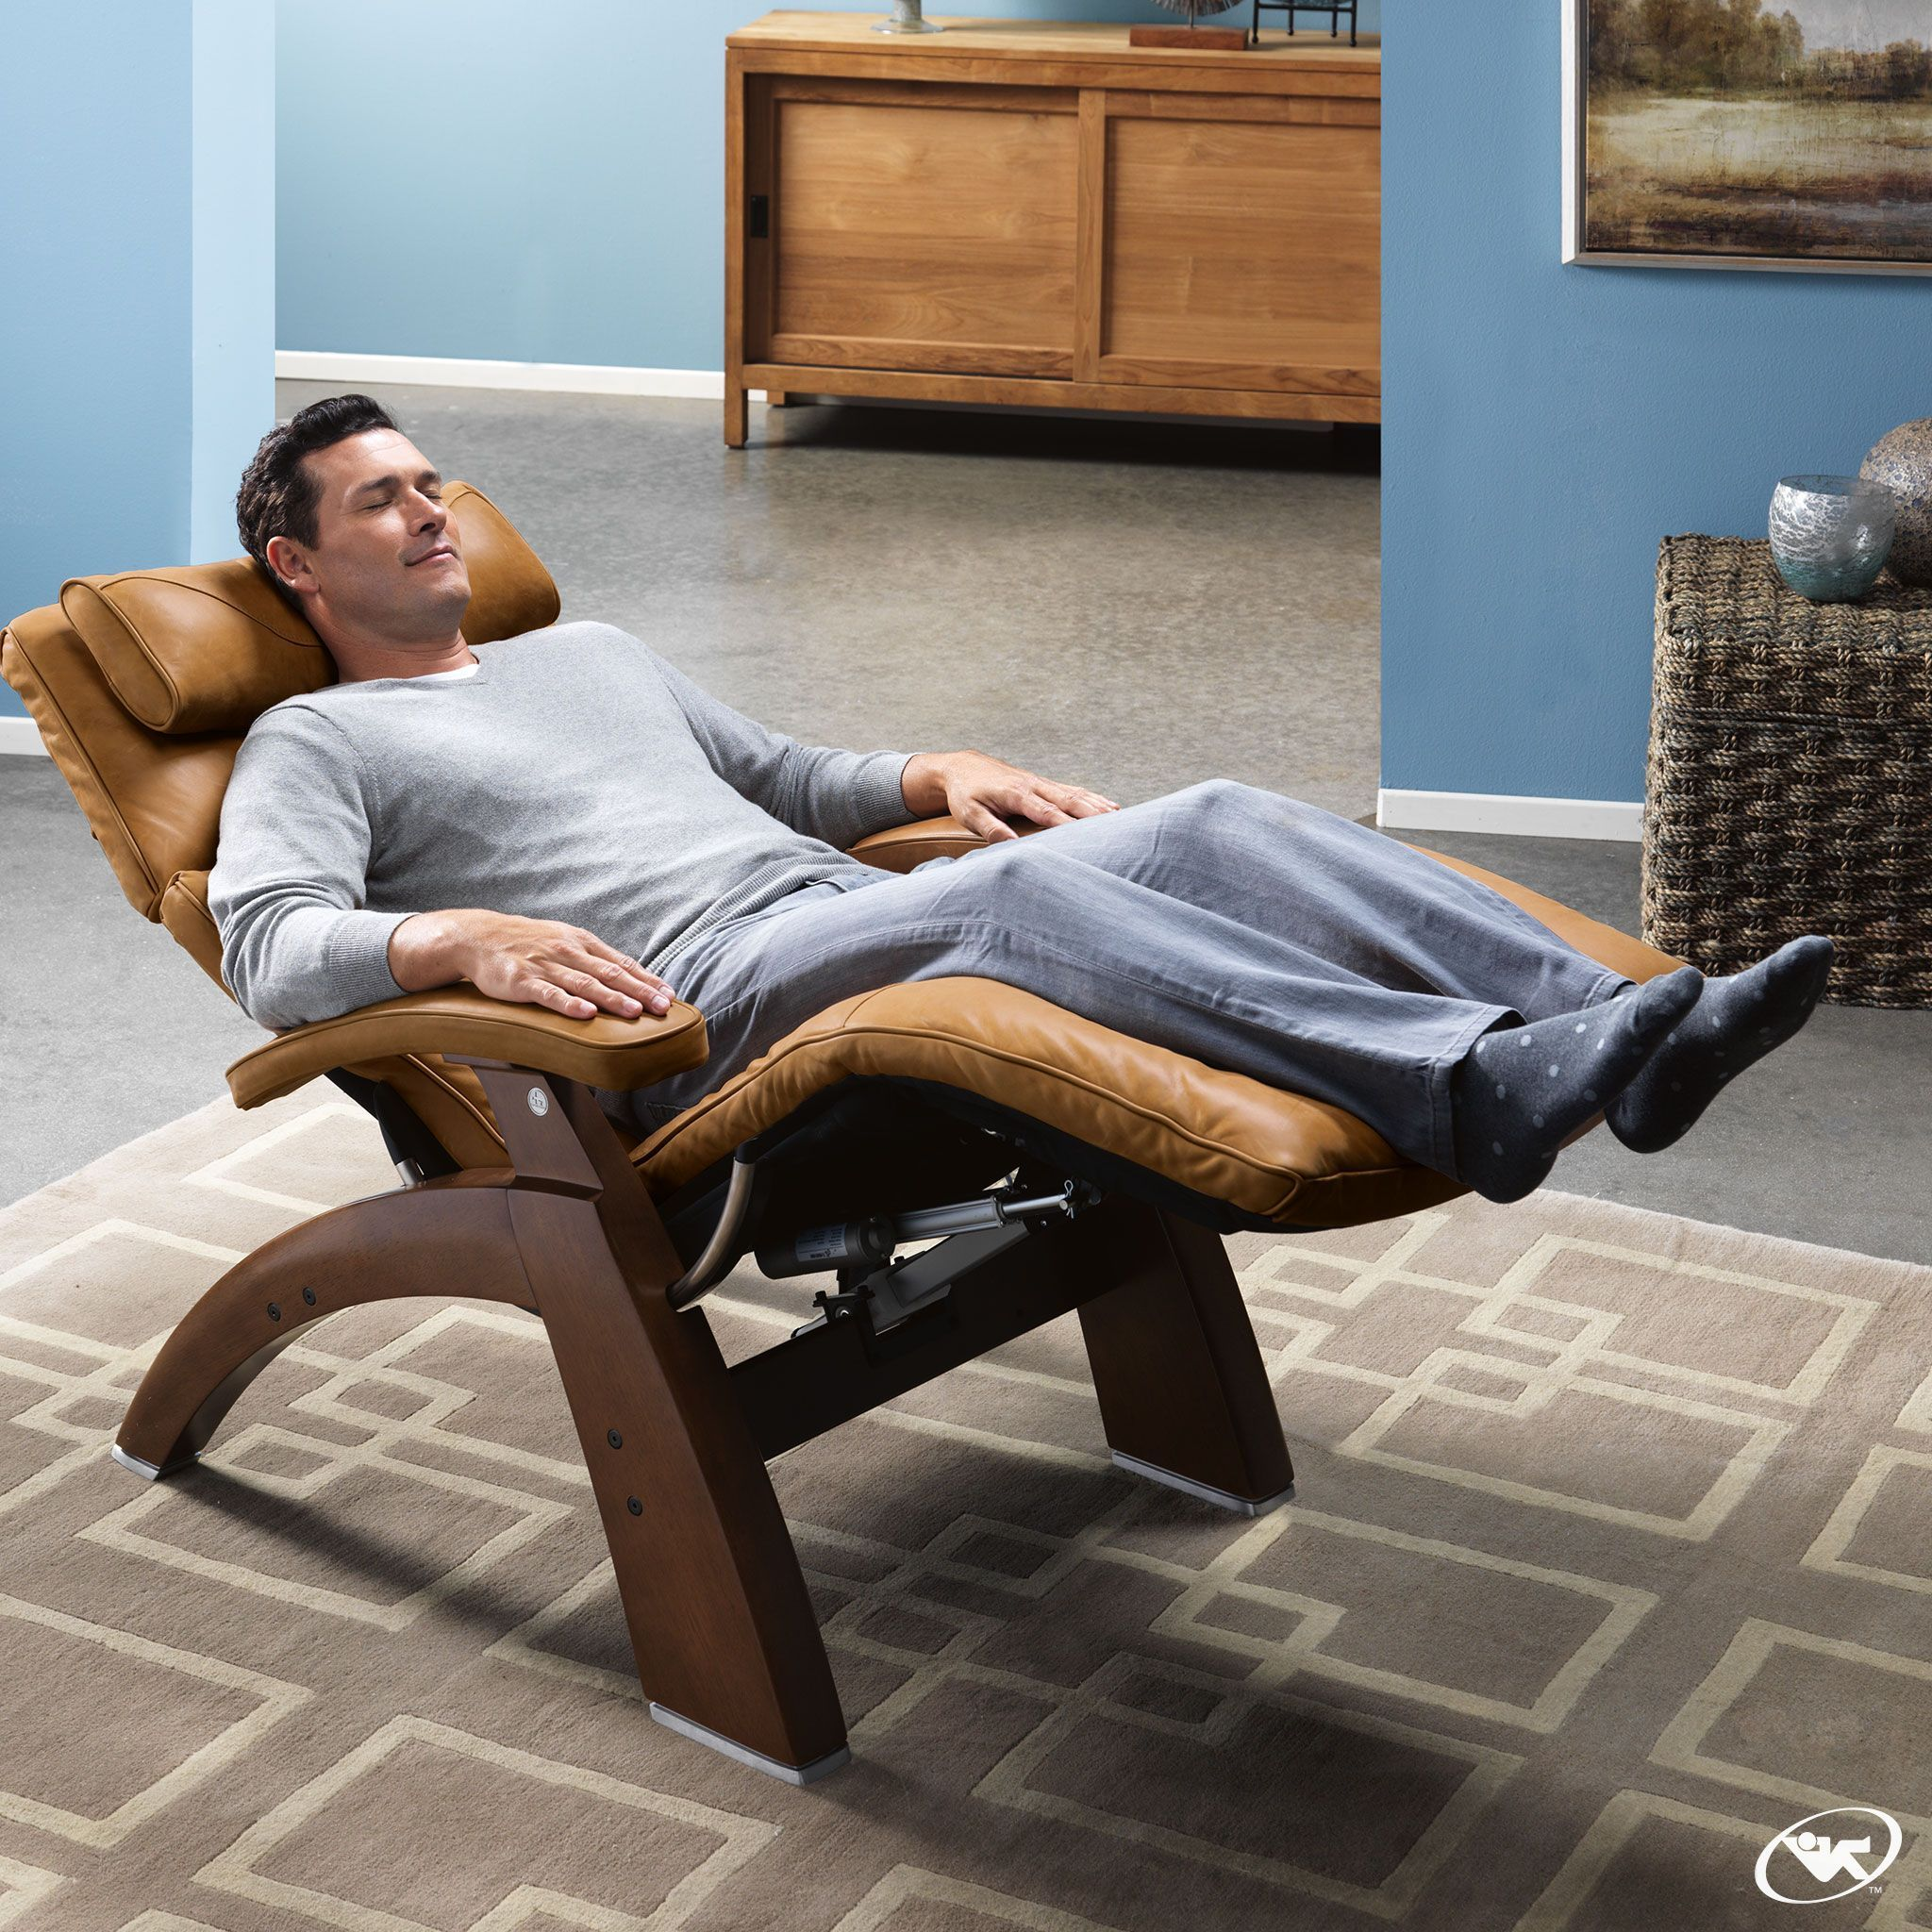 Can a chair really change your life yes it really can